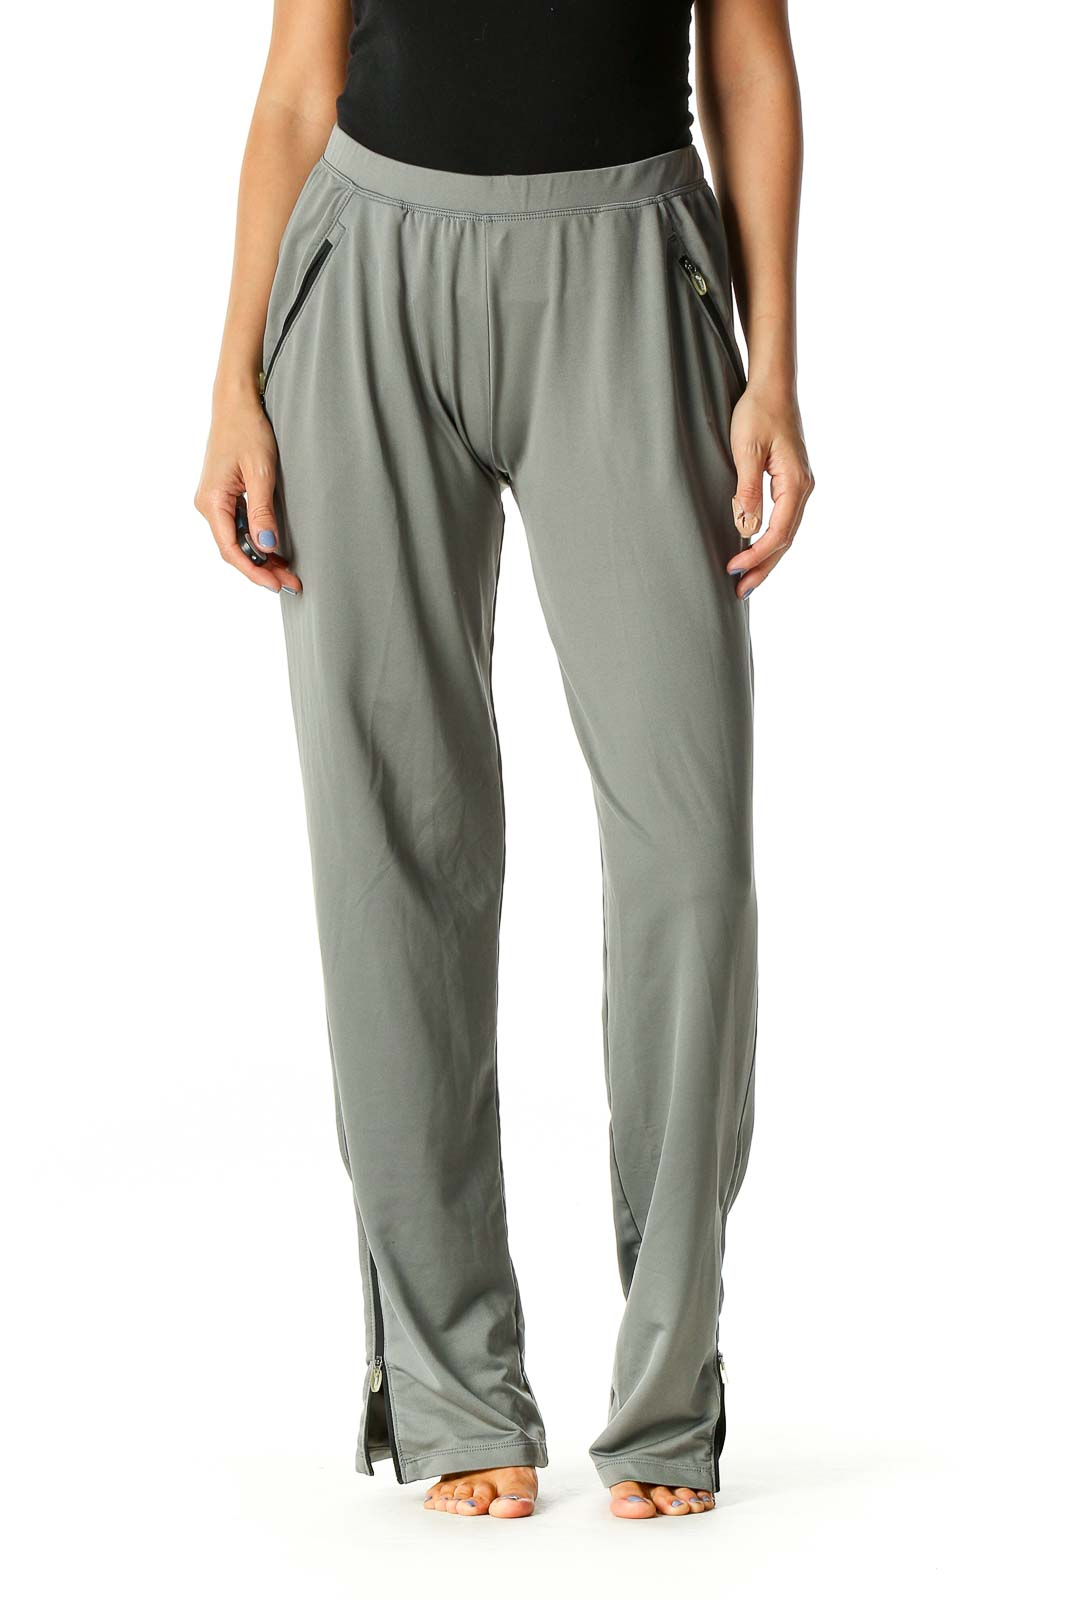 Gray Solid Activewear Pants Front